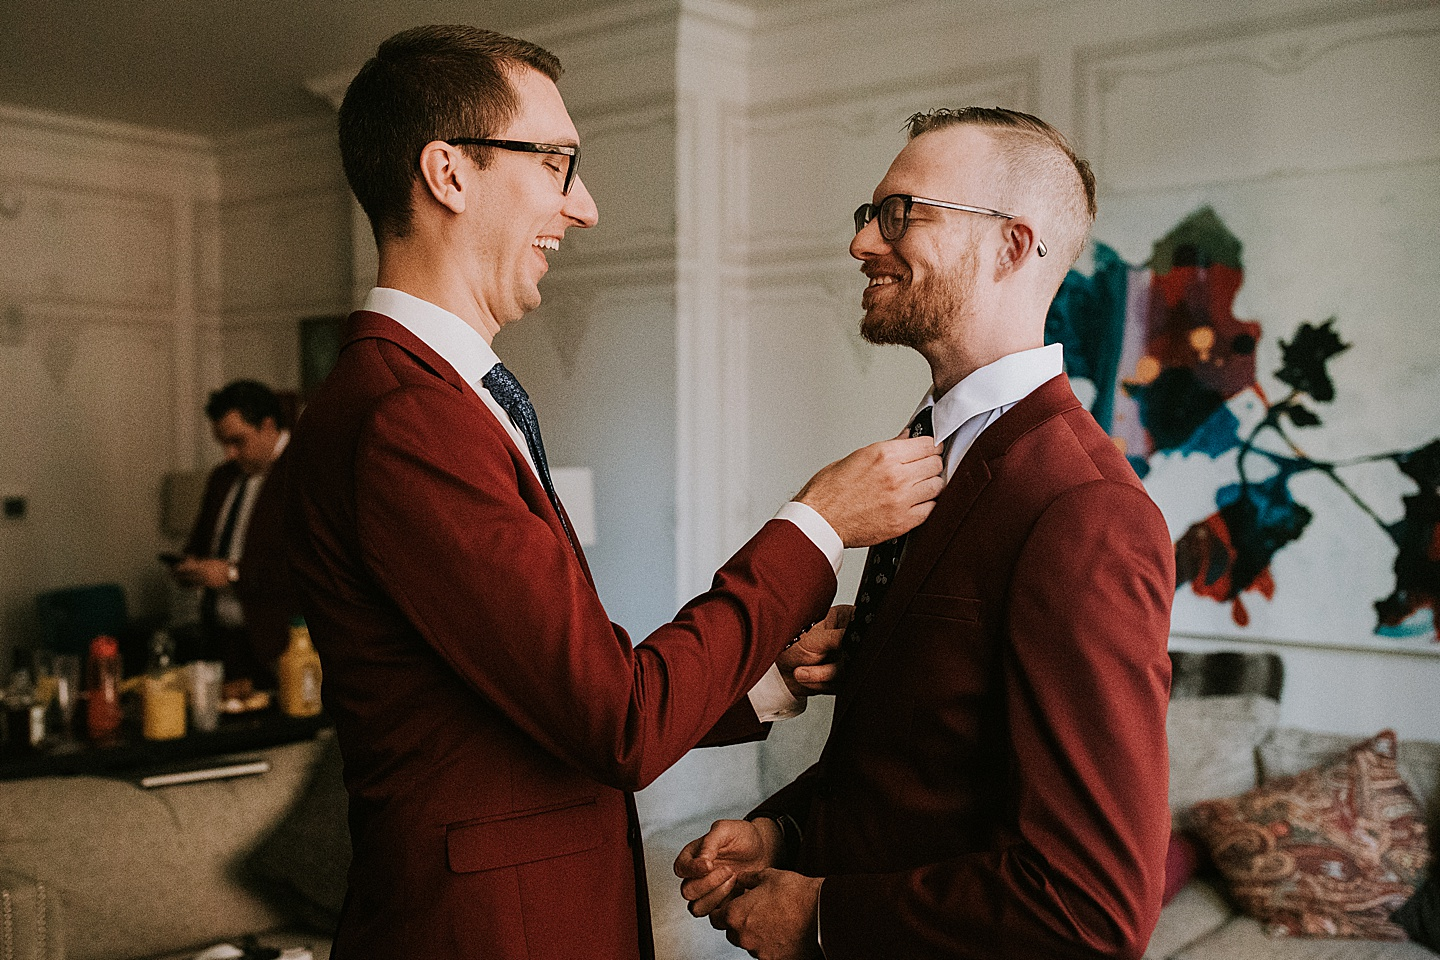 Maroon suit for wedding